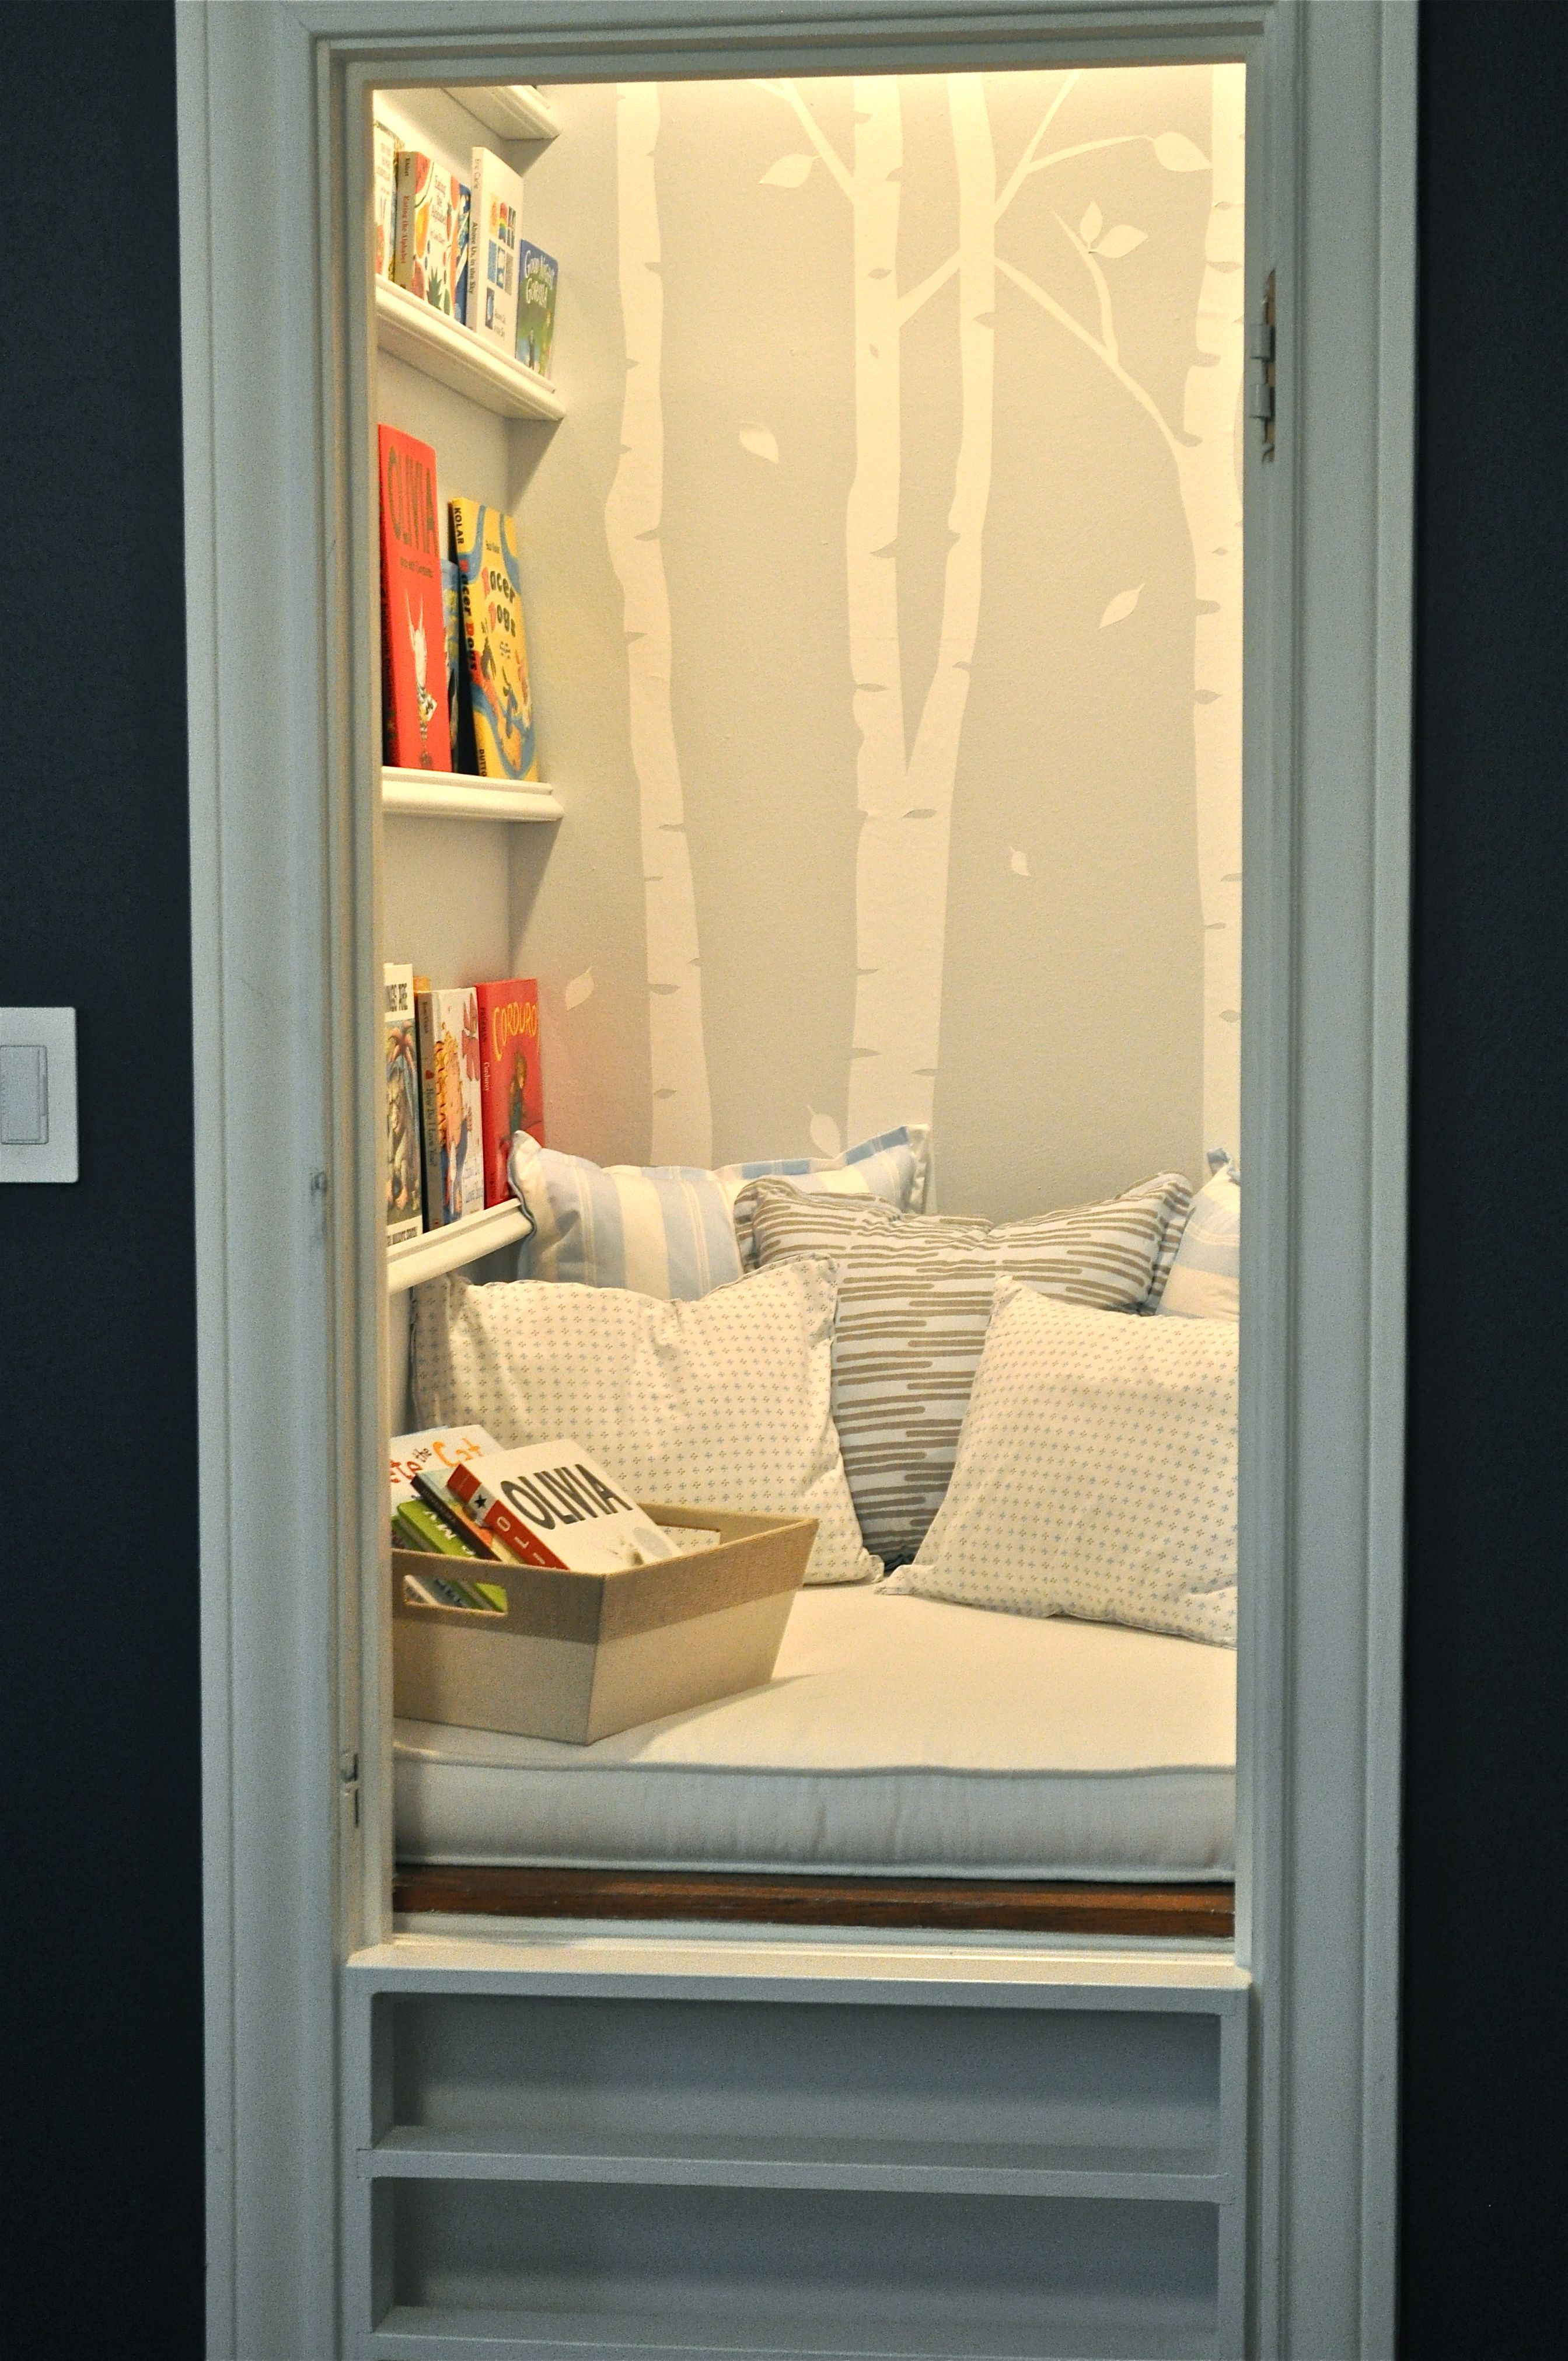 Walk In Closet design ideas, Large or small, a walk-in closet is a